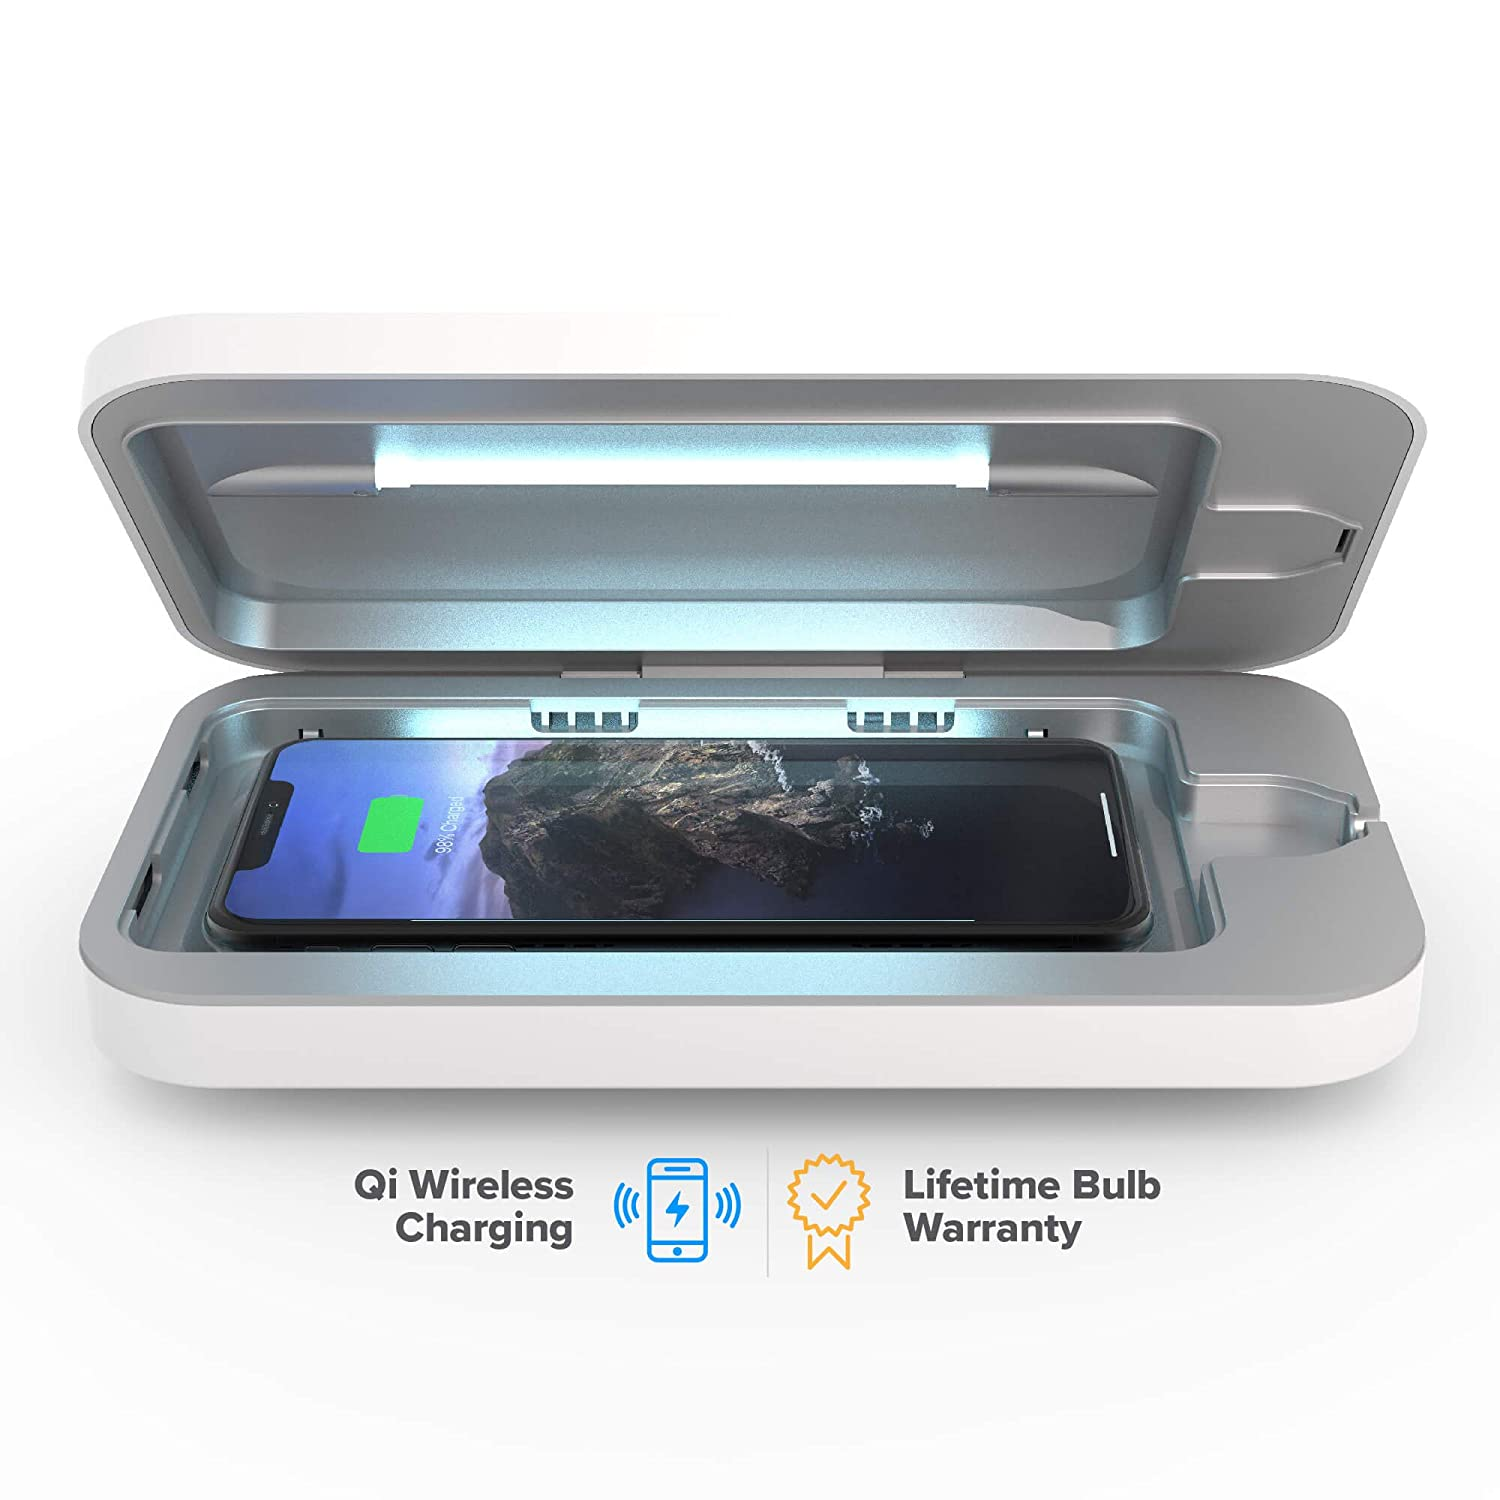 PhoneSoap Wireless UV Smartphone Sanitizer & Qi Charger | Patented & Clinically Proven UV Light Disinfector | (White)